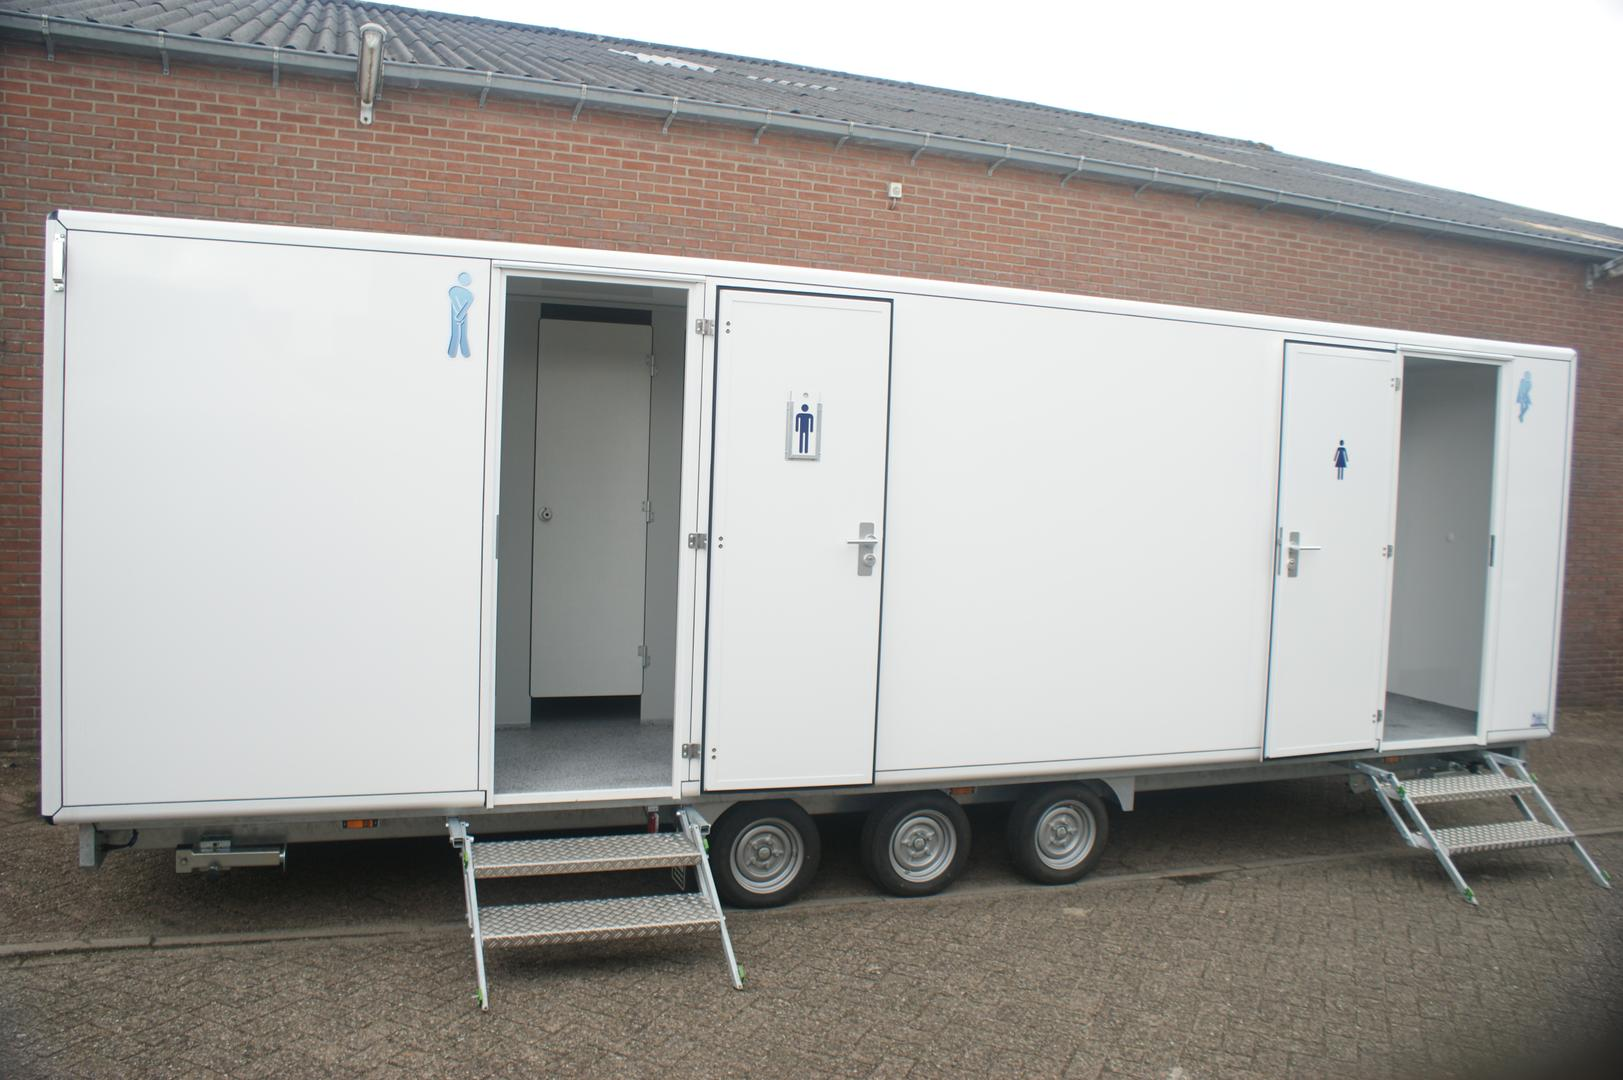 XL toiletwagen